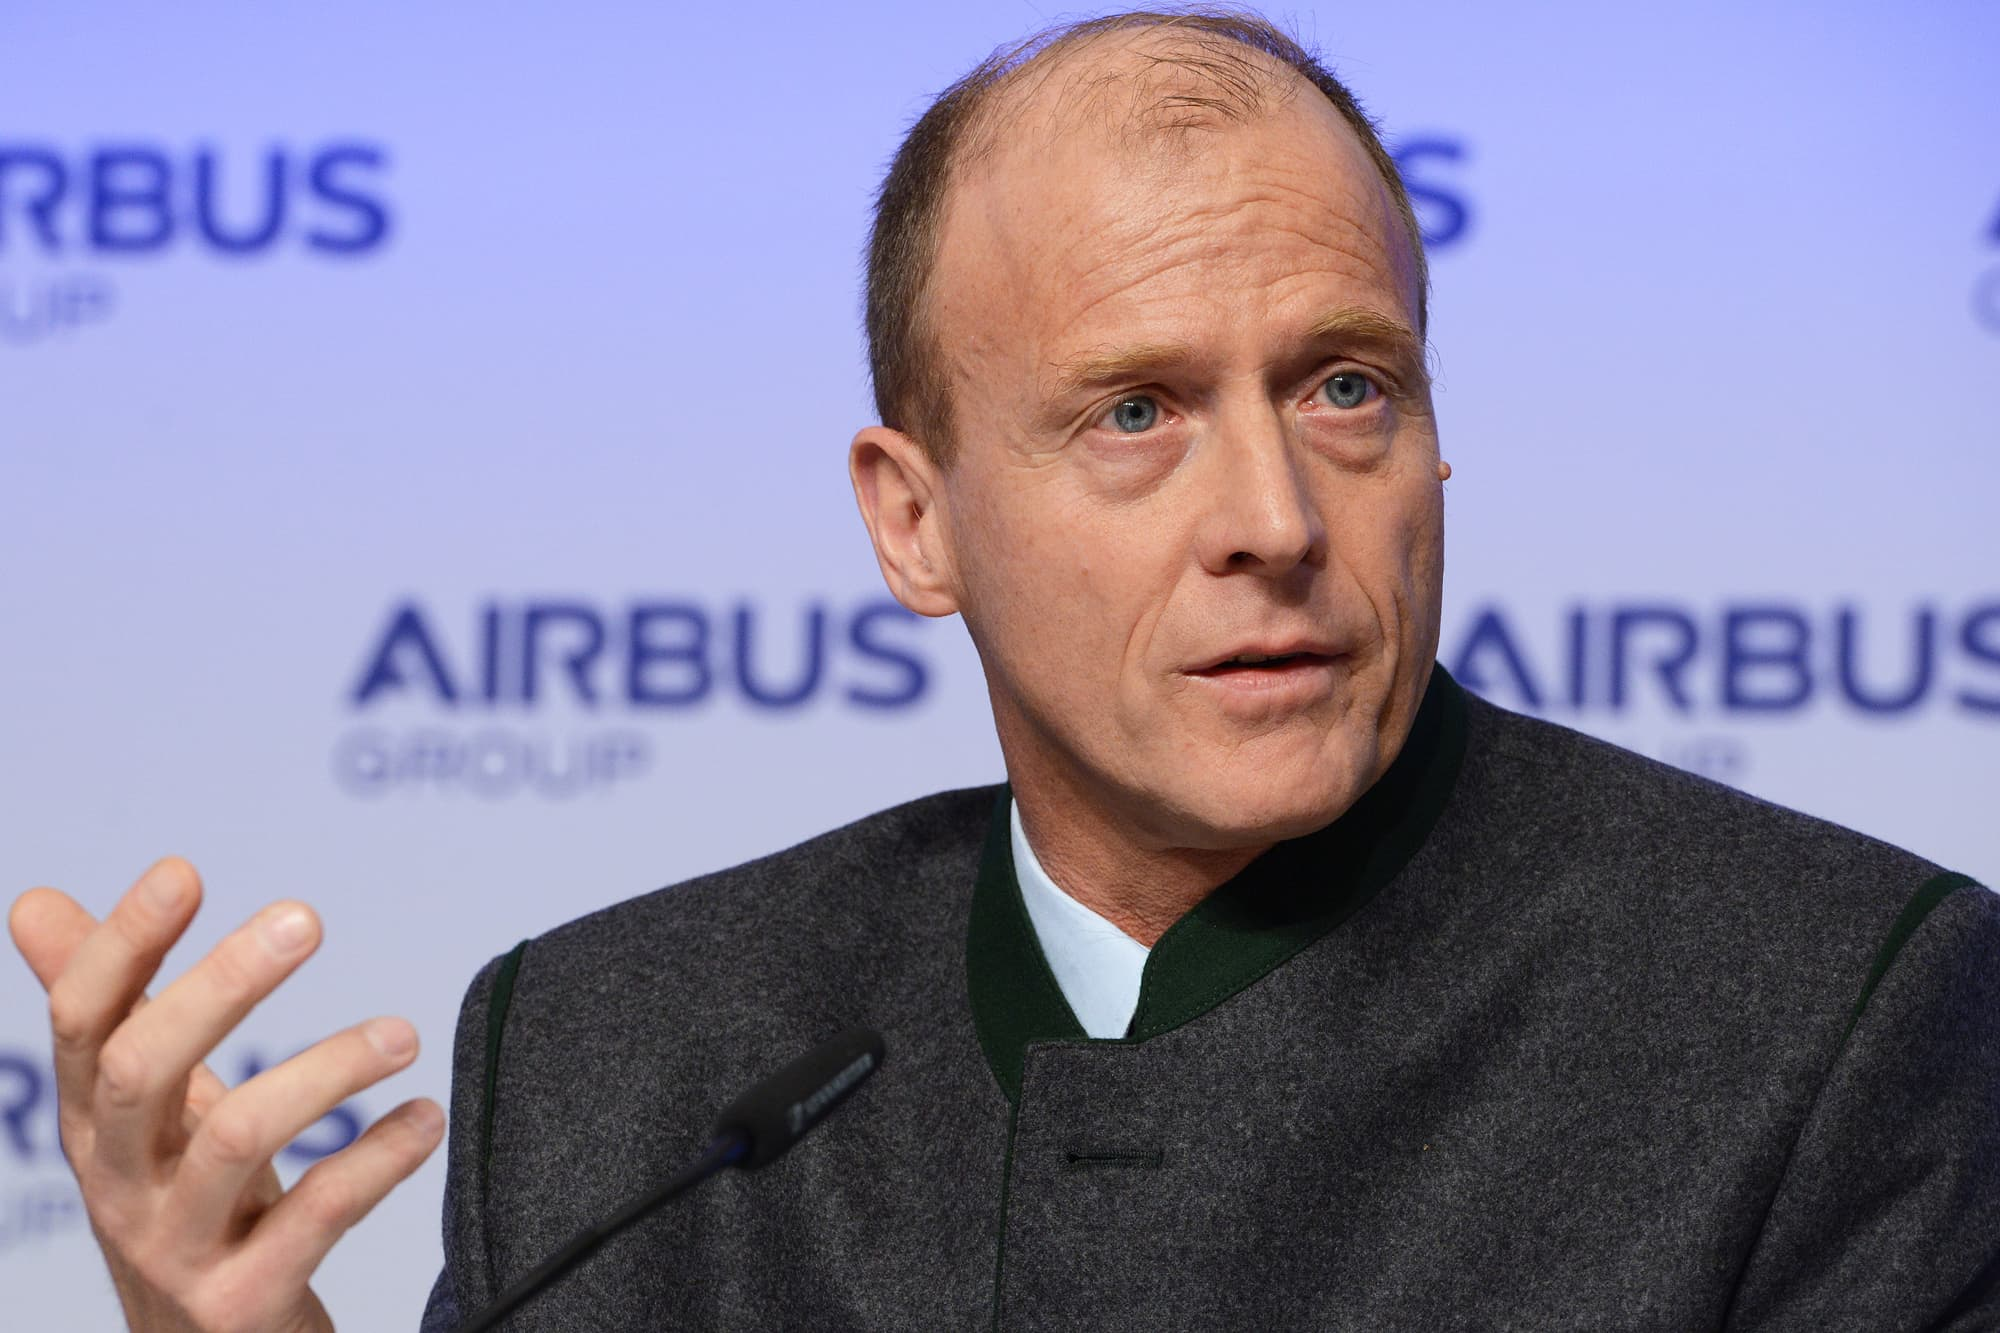 Airbus Ceo Tom Enders Reportedly Plans To Step Down In 2019